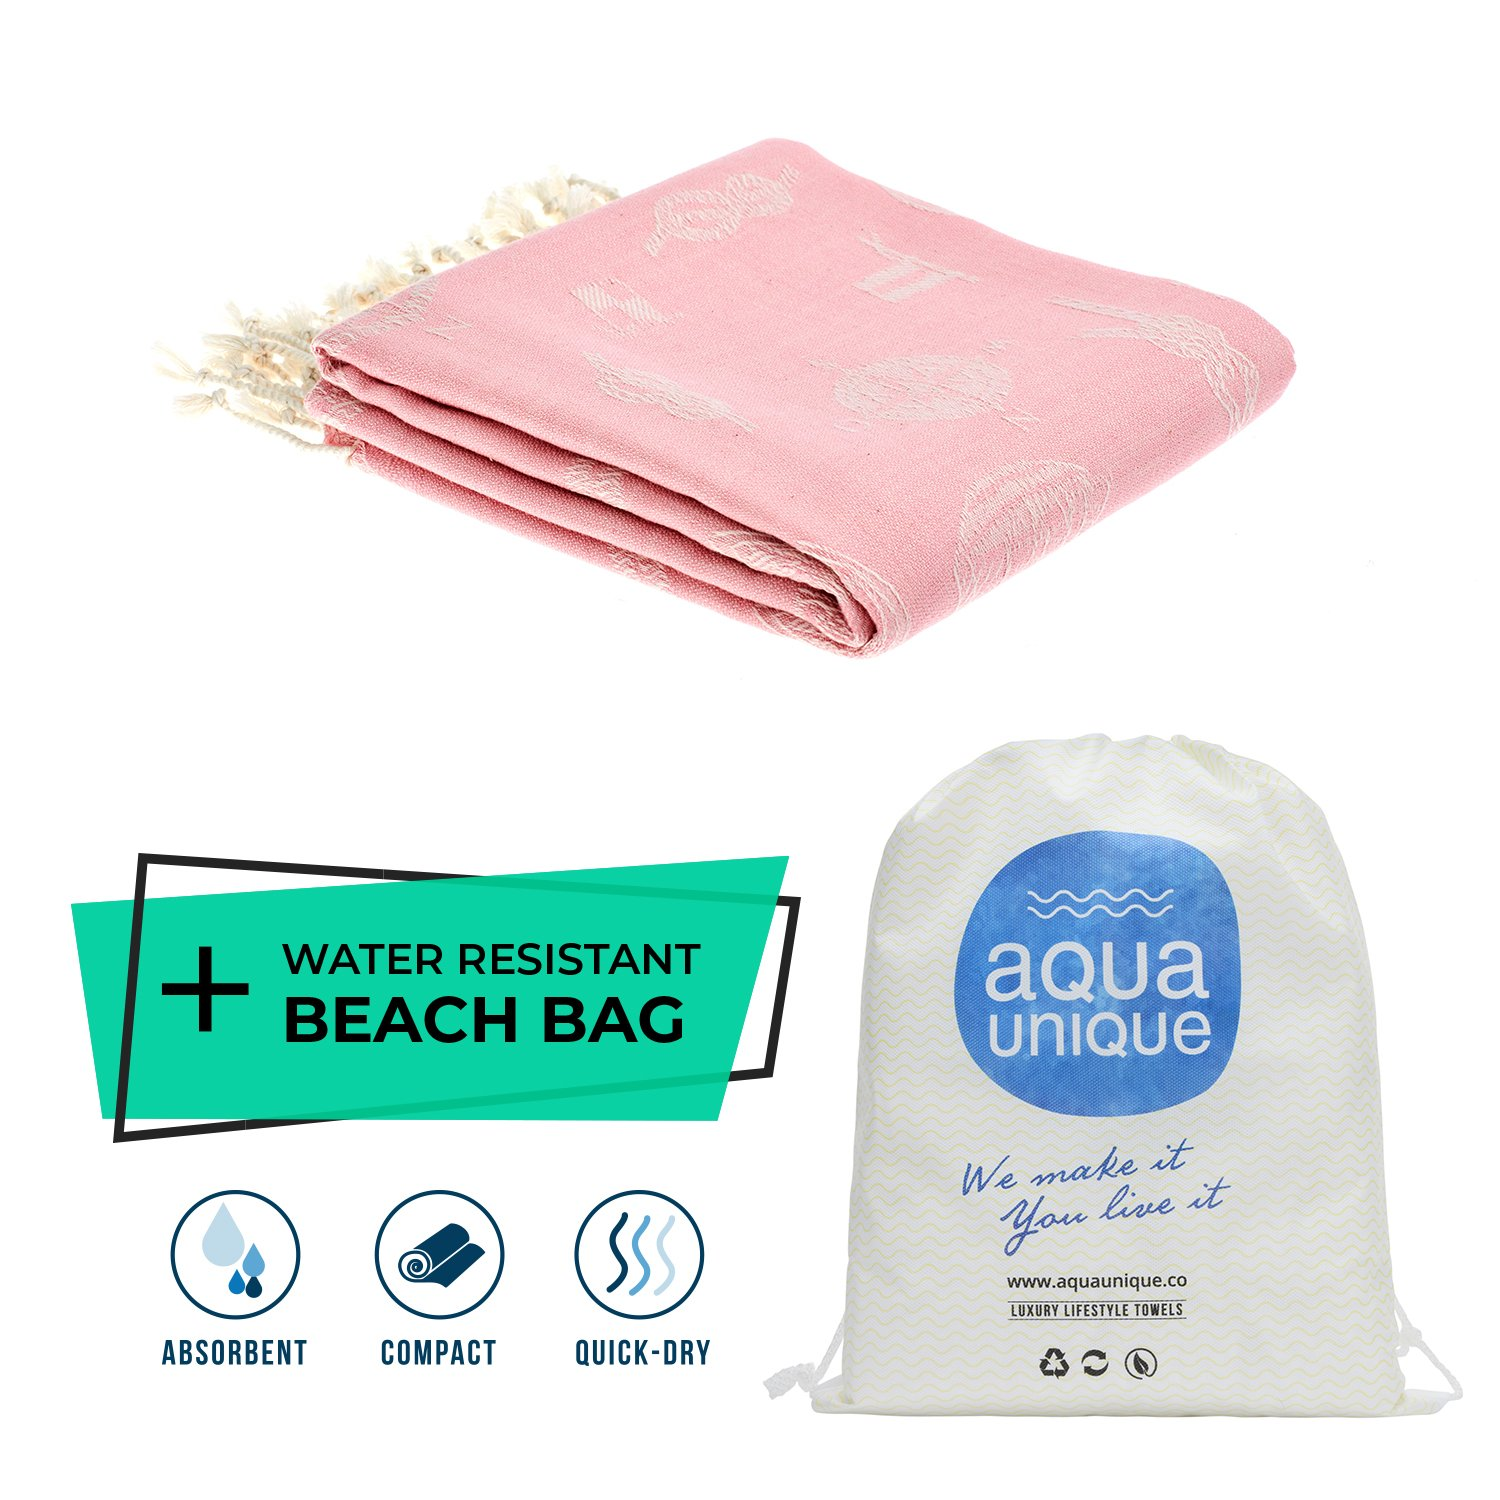 Marine Turkish Handloomed Towel By Aqua Unique –Pre-Washed, Fashionable & Luxurious Towel For The Beach, Spa, Hotel, Festivals &Traveling | 100% Pure Turkish Cotton & Oeko-Tex Certified (Marine Pink)